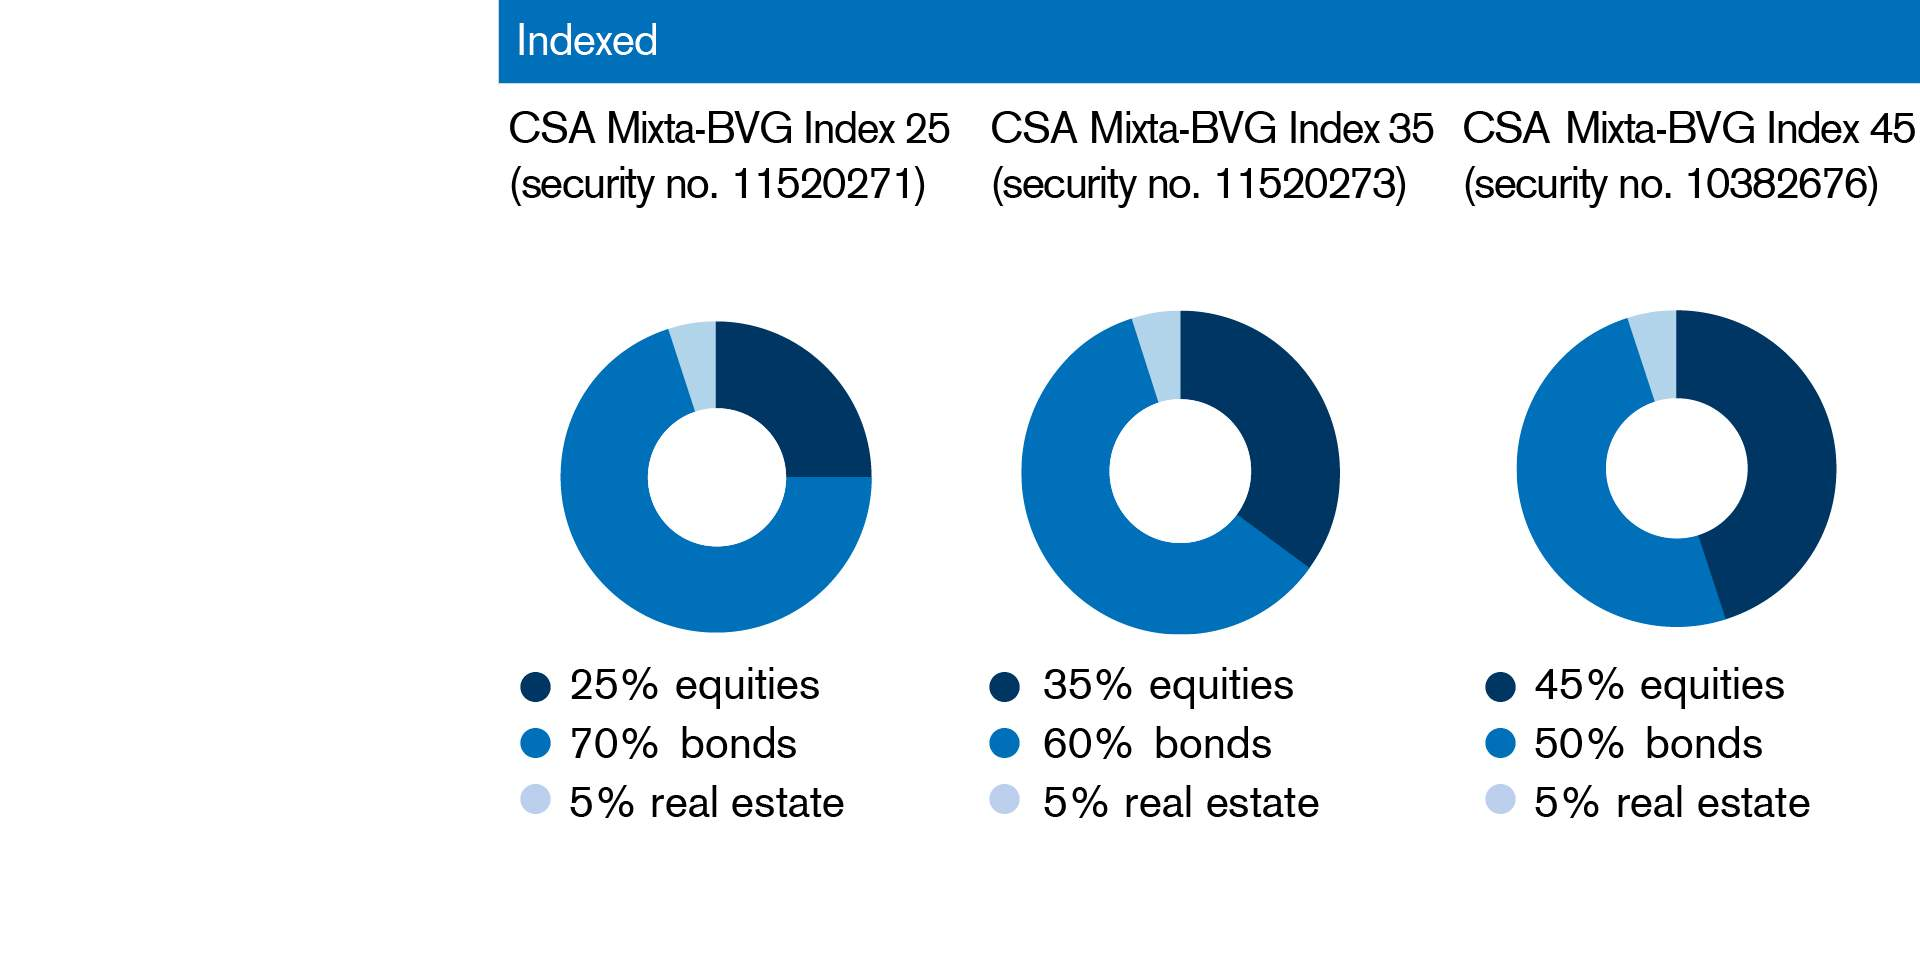 Indexed investment groups